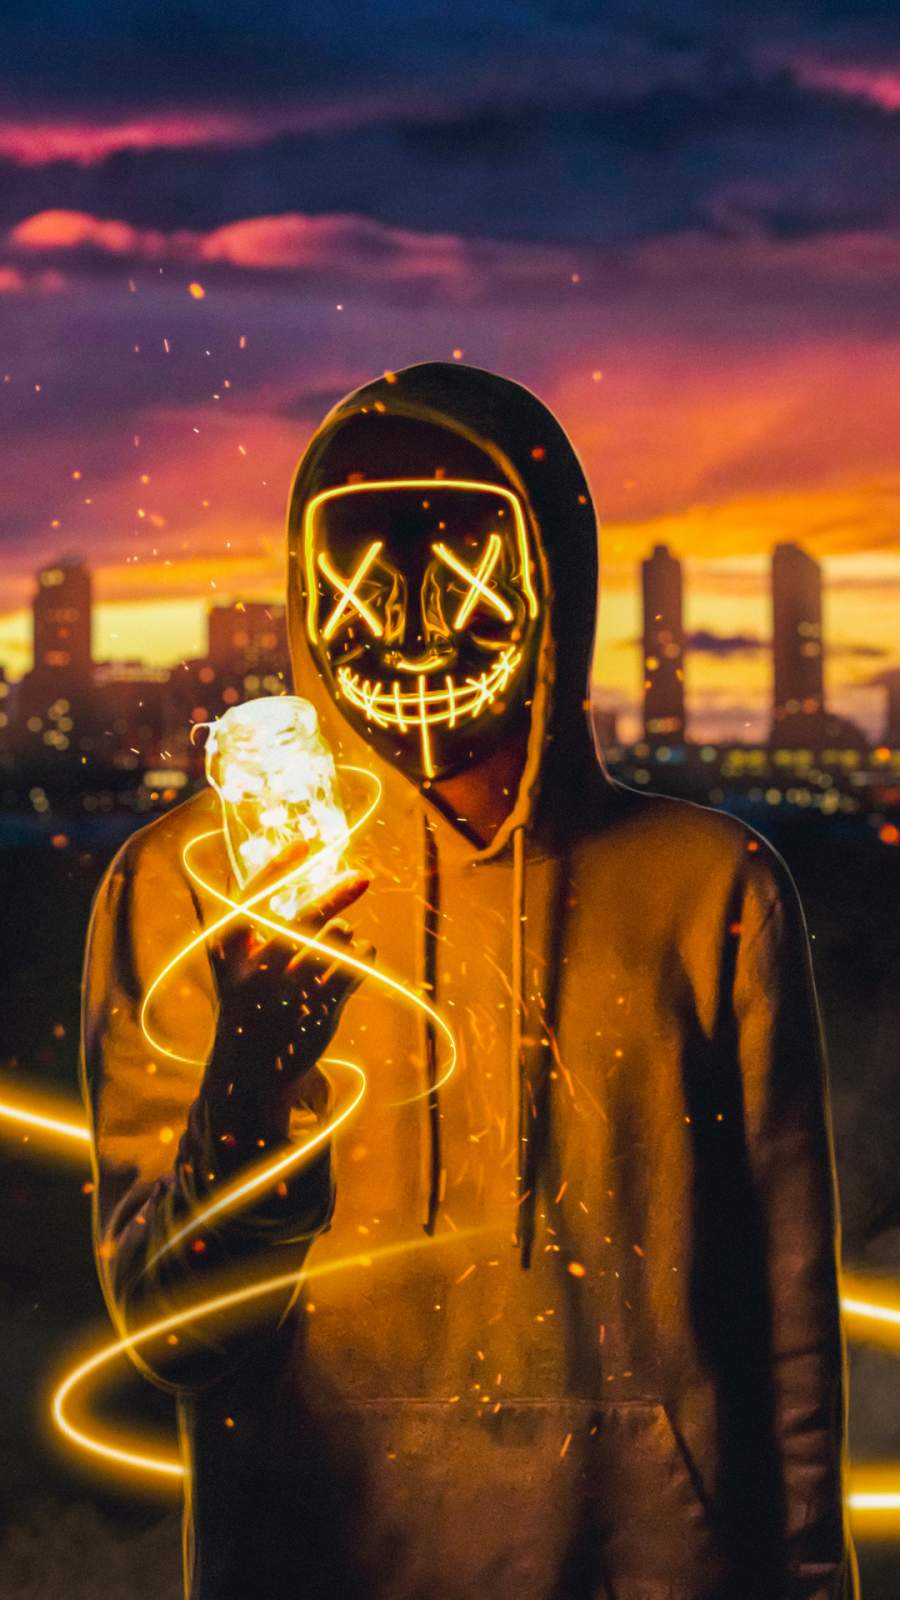 Neon Mask Guy with Light Cube iPhone Wallpaper - iPhone ...